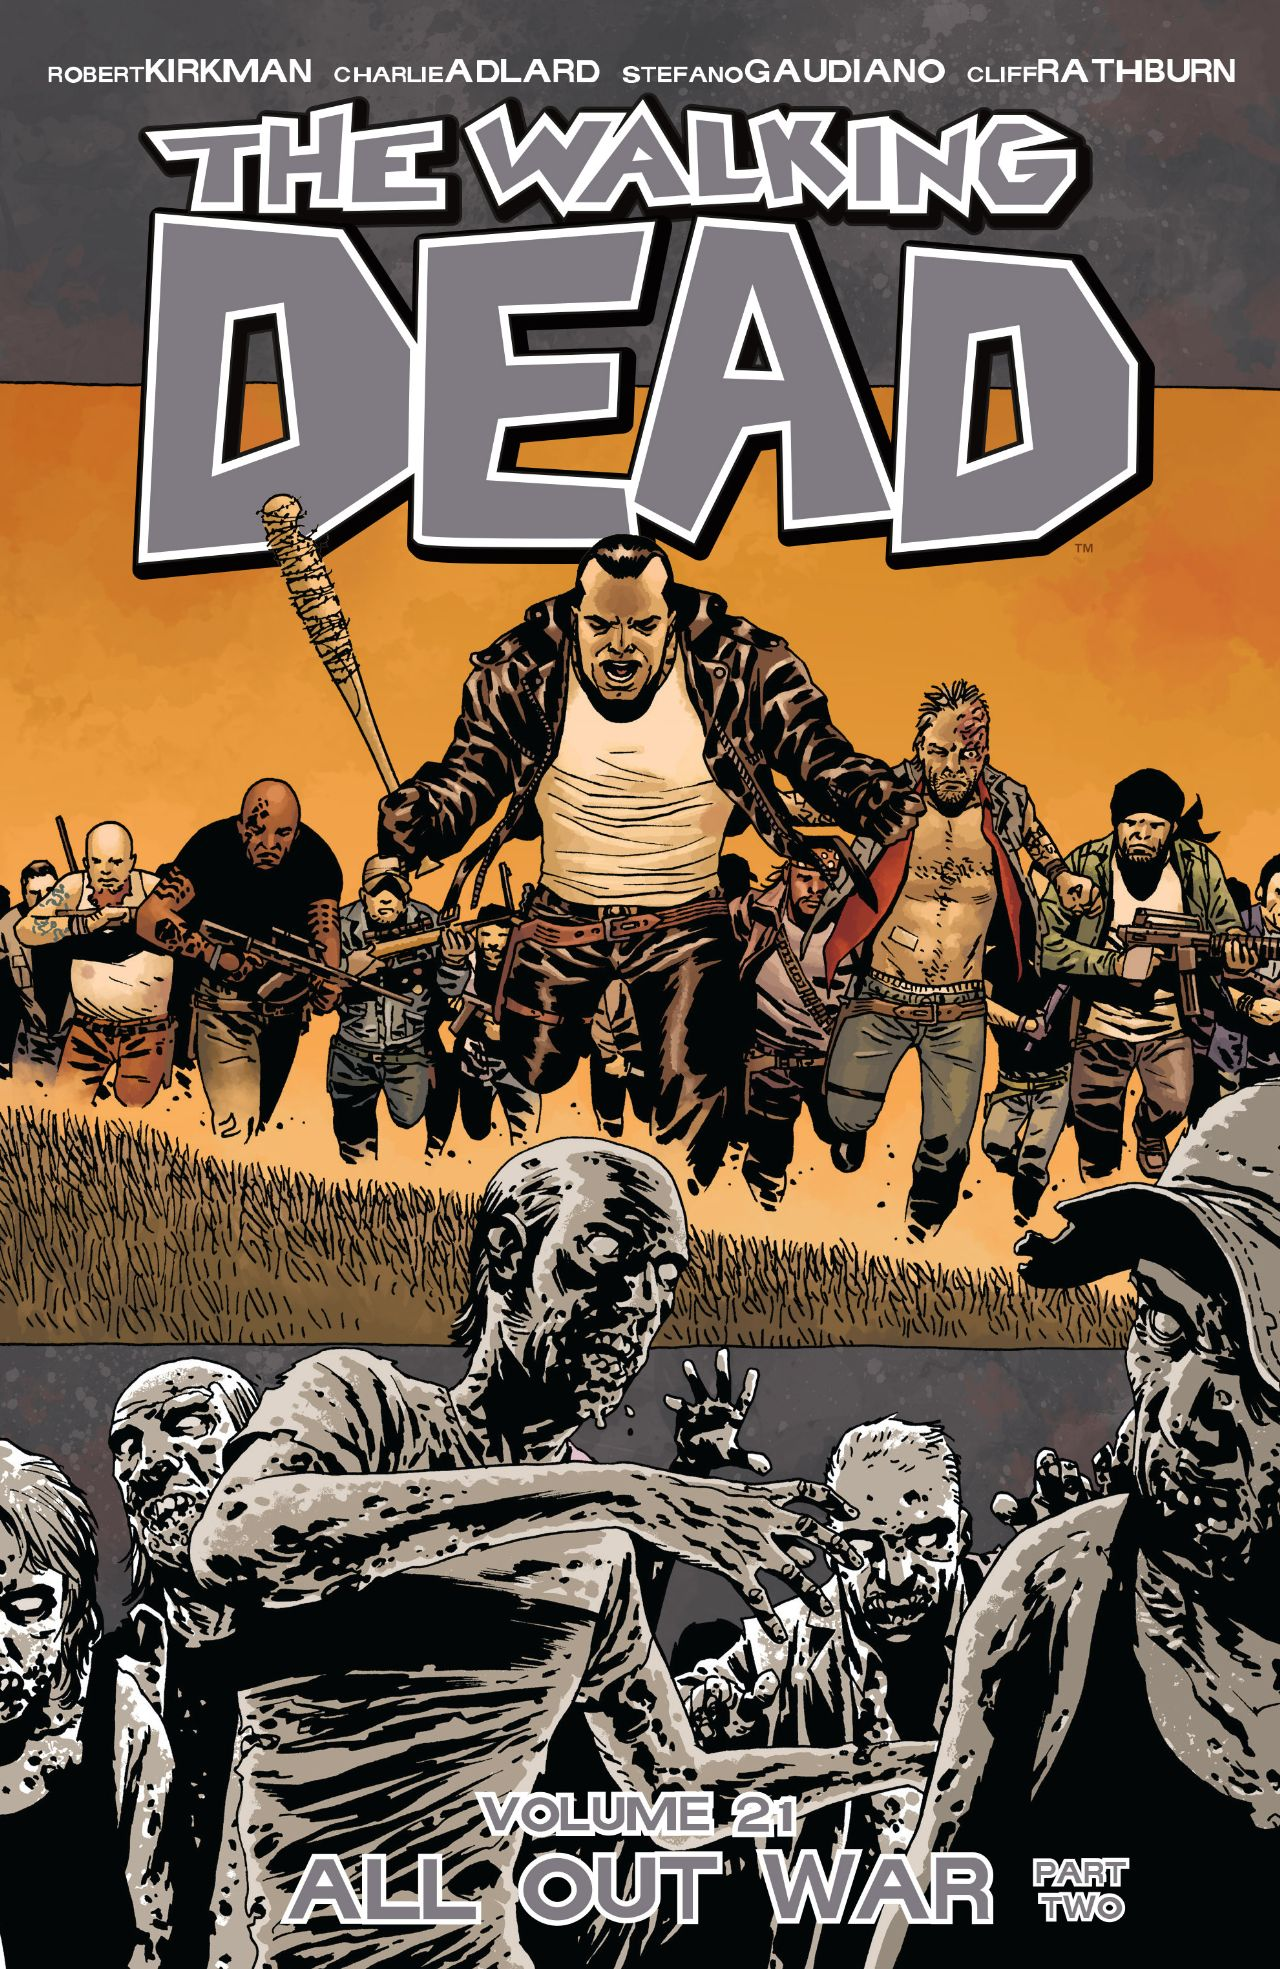 Walking Dead, Volume 21: All Out War - Part Two